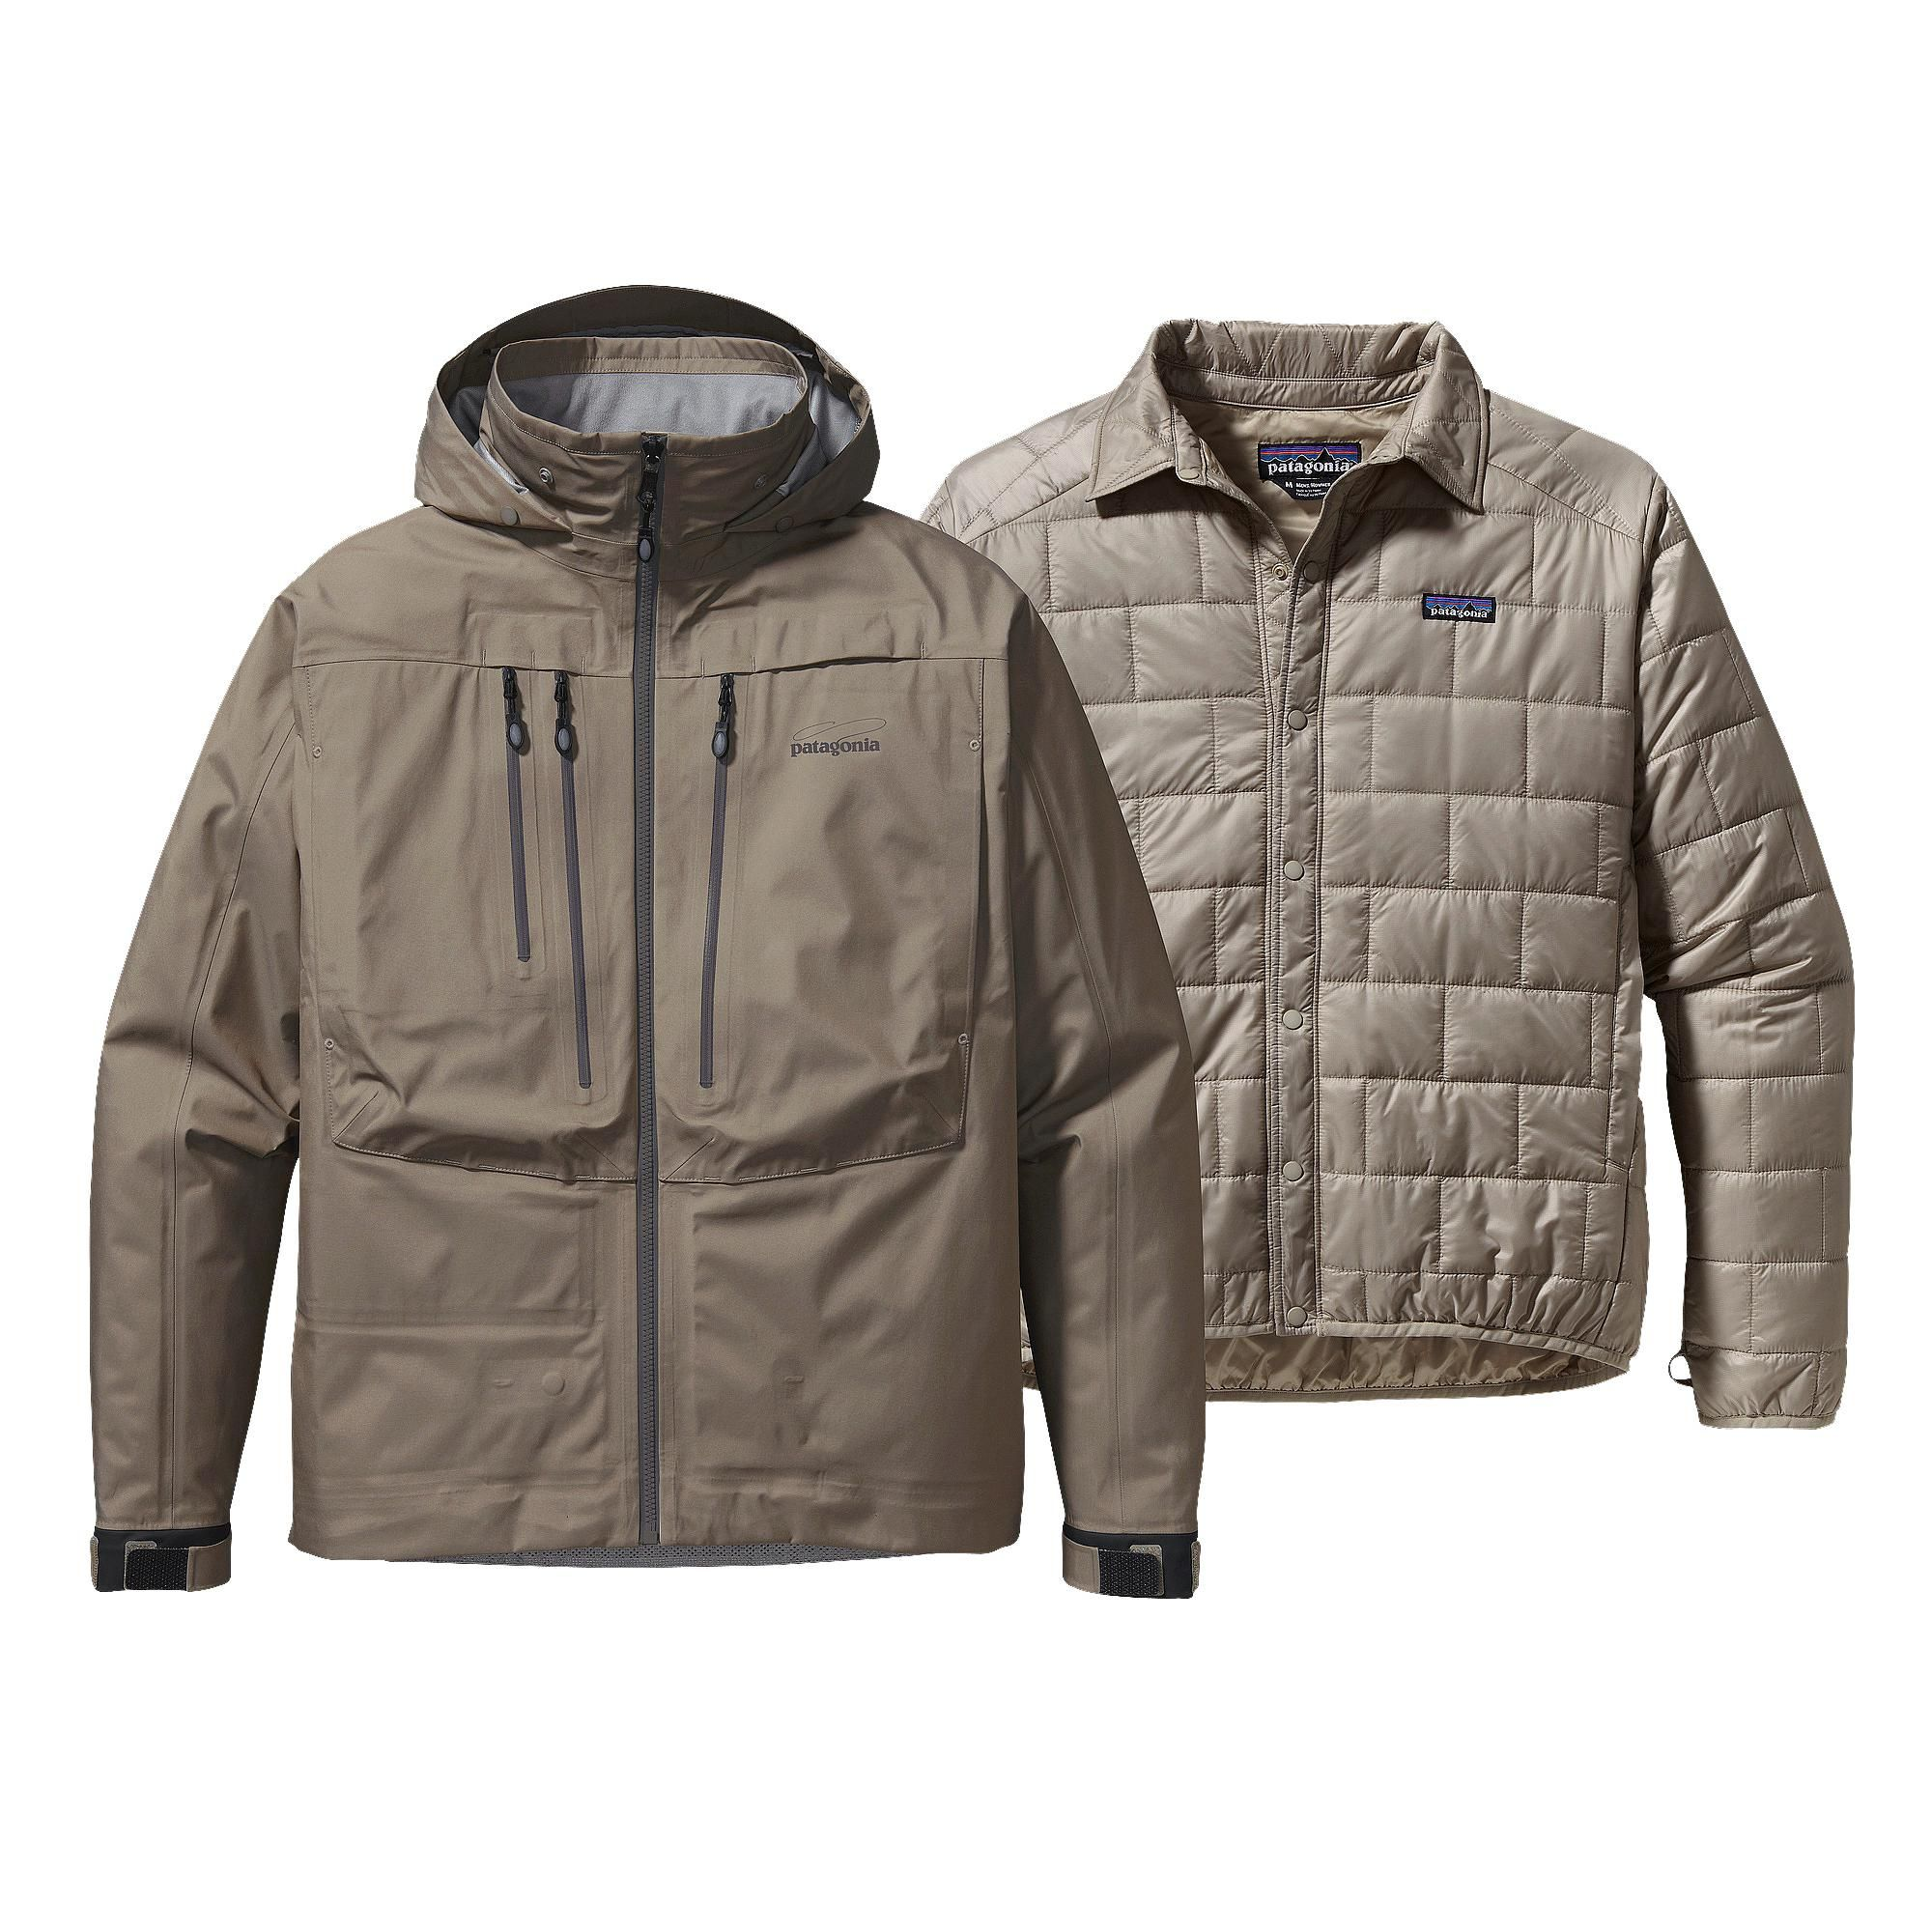 Patagonia 3 In 1 River Salt Jacket For Fly Fishing Fishing Jacket Mens Outdoor Clothing Jackets